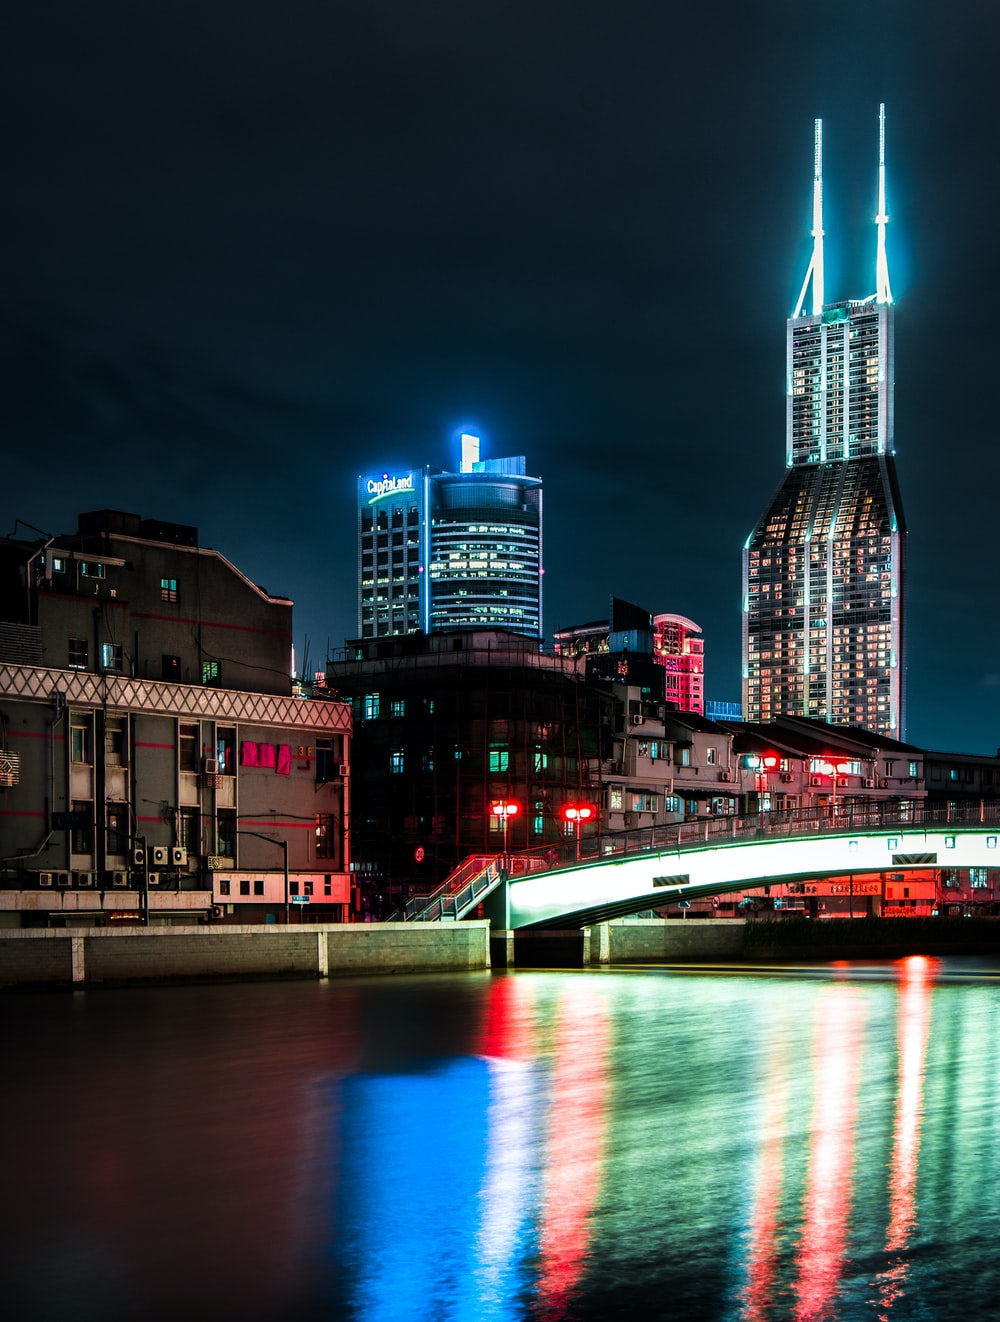 high-rise lighted buildings near body of water